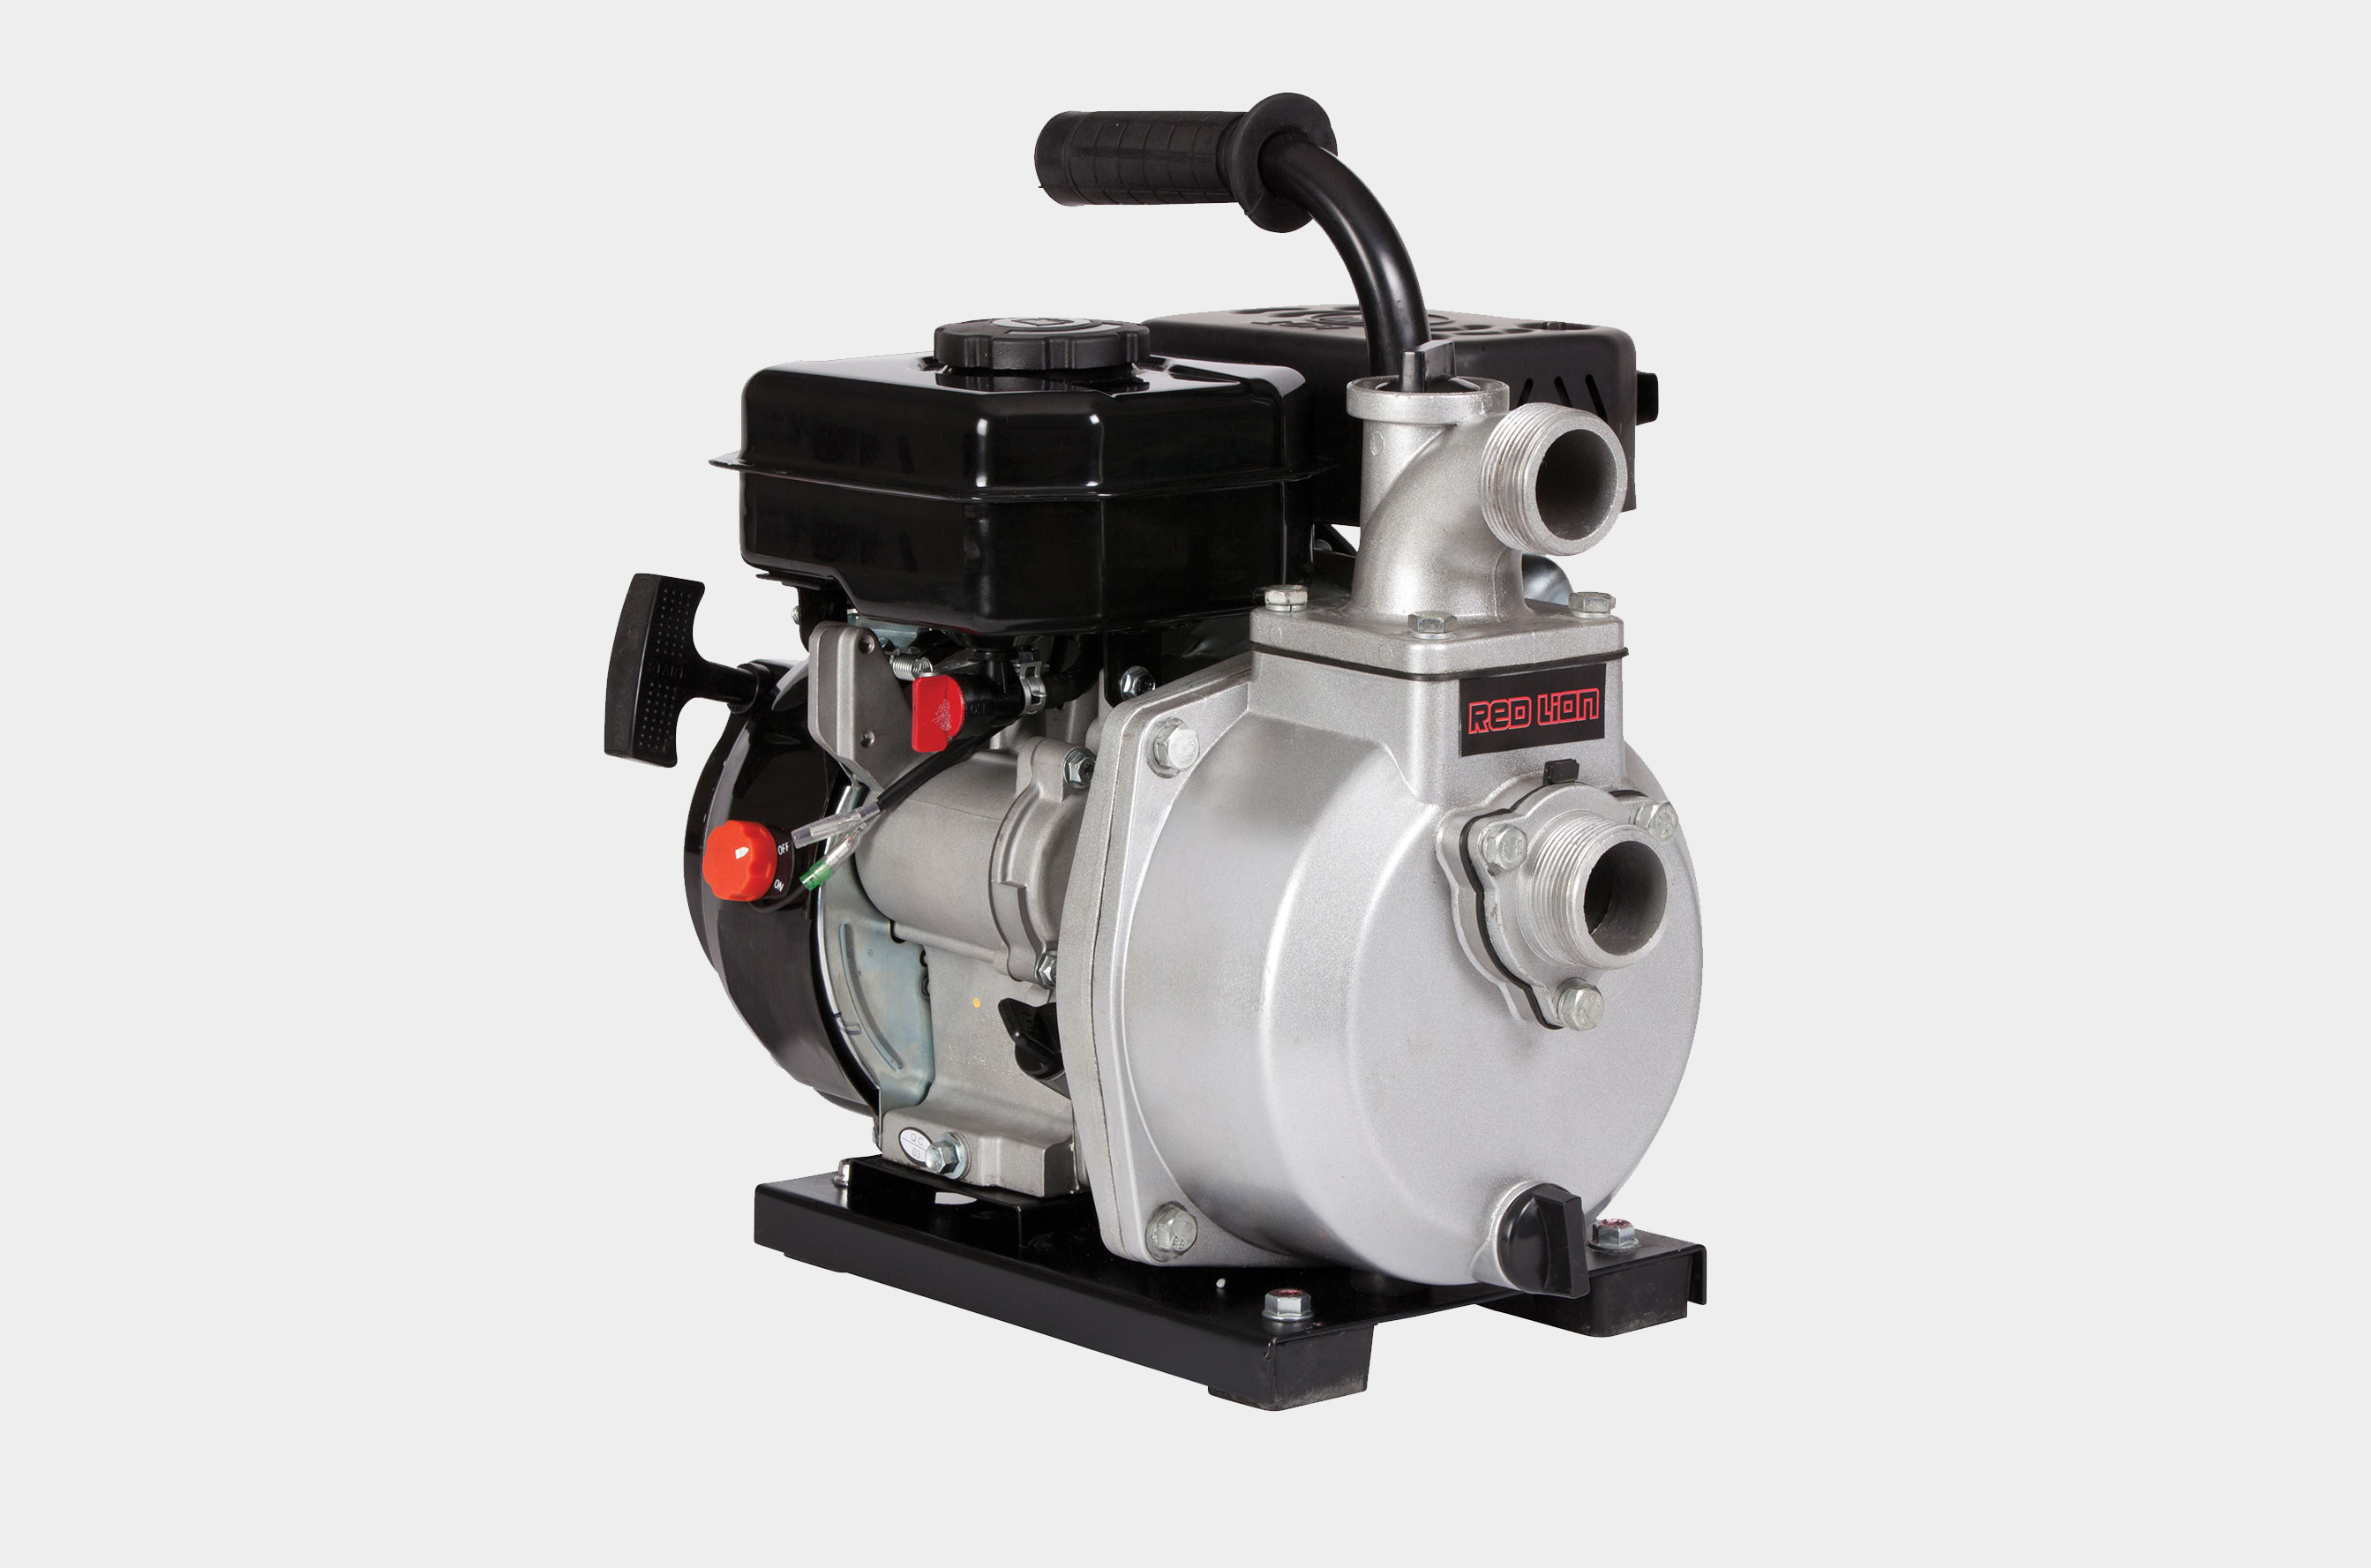 2RLAG-1L Aluminum Water Transfer Pump - Red Lion